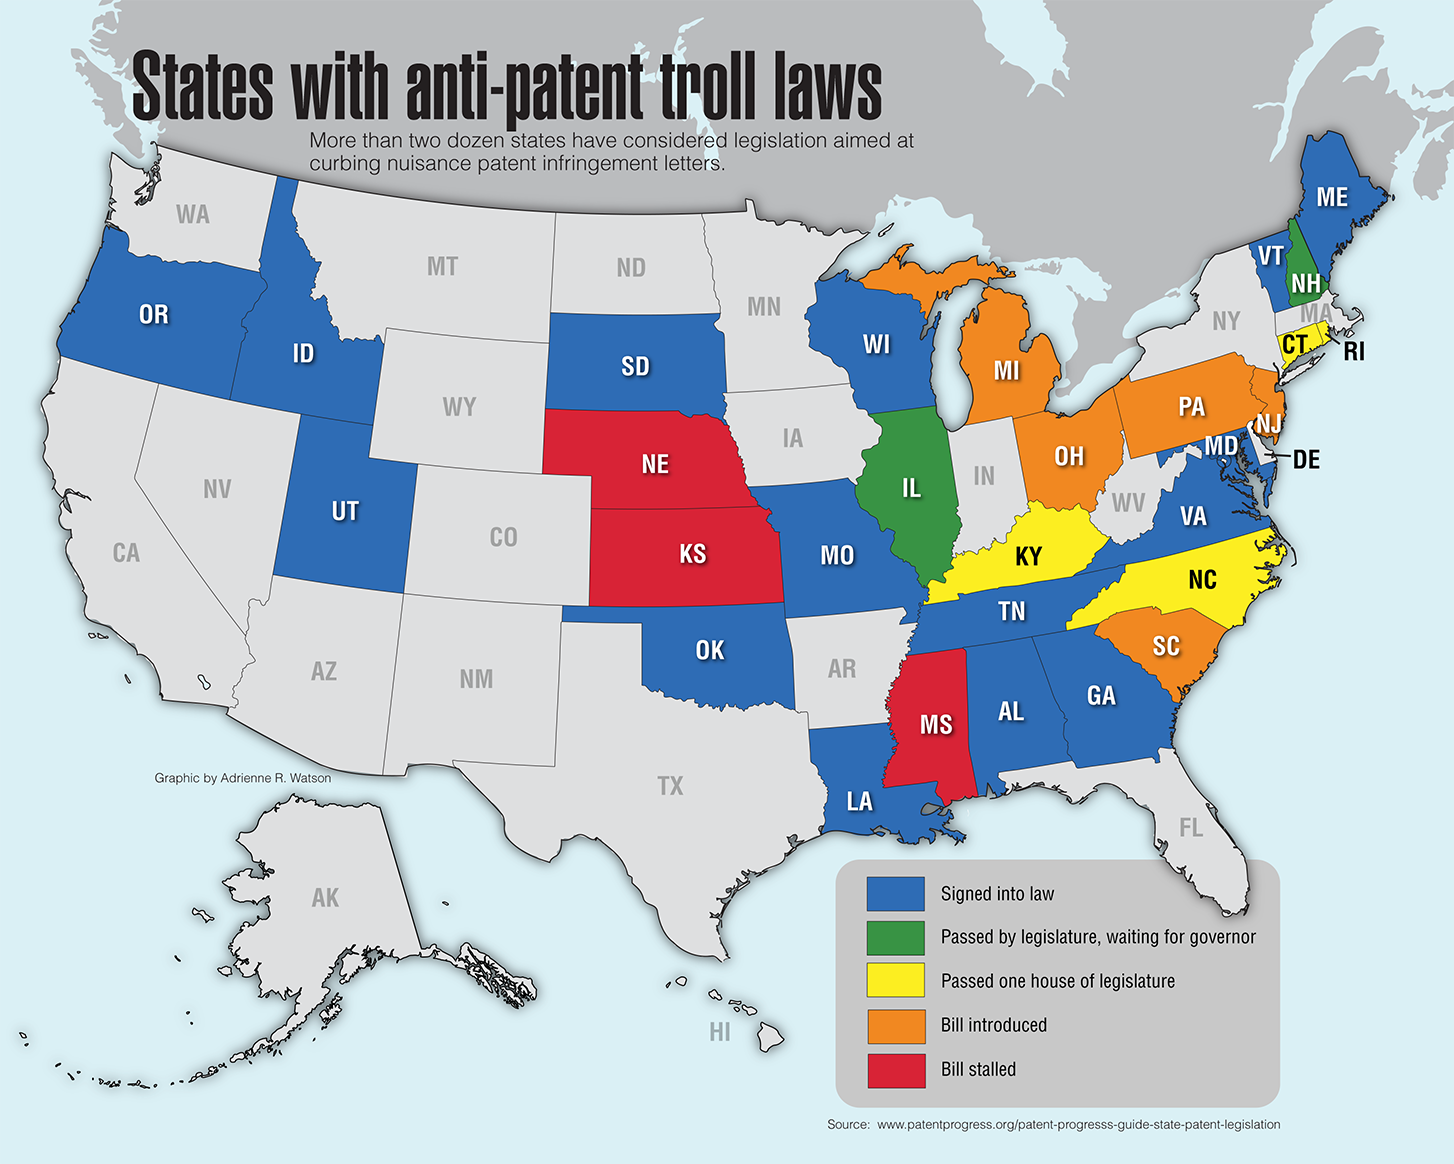 patent trolls The issue in a move that could eliminate many lawsuits brought by patent trolls, the us supreme court has upheld the constitutionality of an administrative process that allows questionable patents to be reexamined at the us patent and trademark office without the need for expensive and time-consuming litigation.